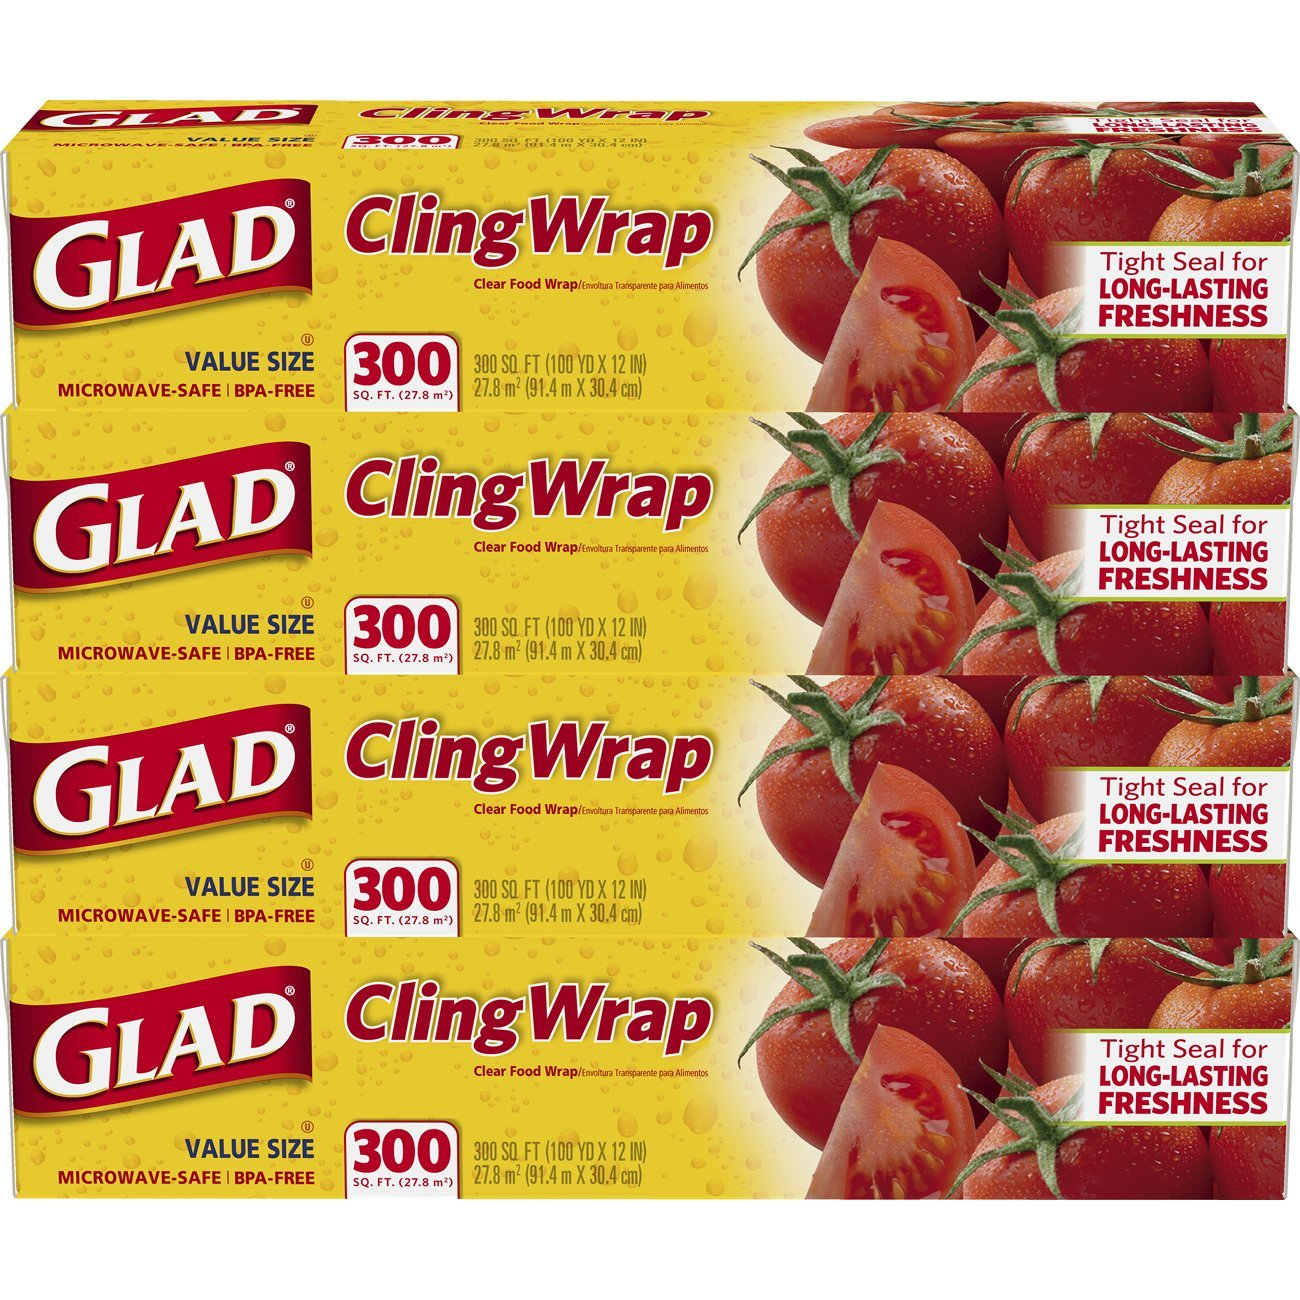 Glad ClingWrap Plastic Food Wrap - 300 Square Foot Roll - 4 Pack